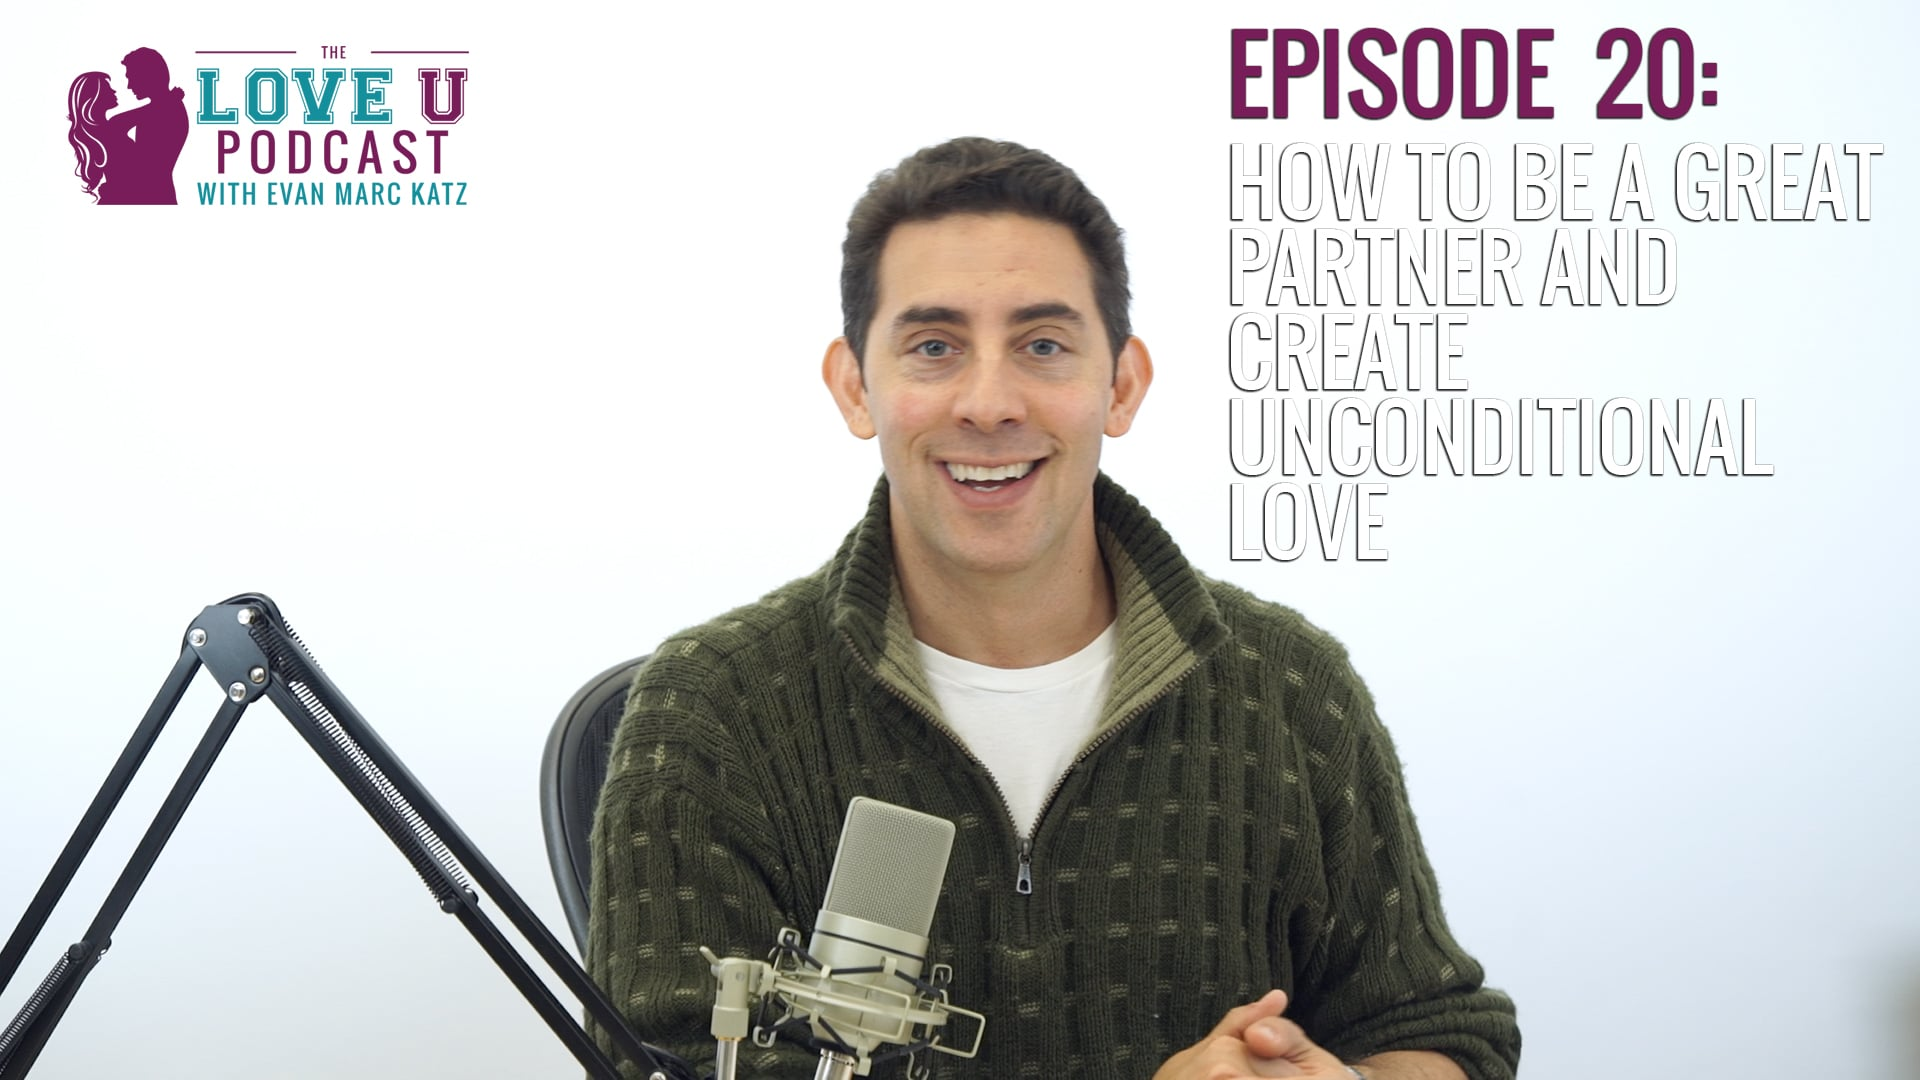 LoveU-Podcast-Episode-20